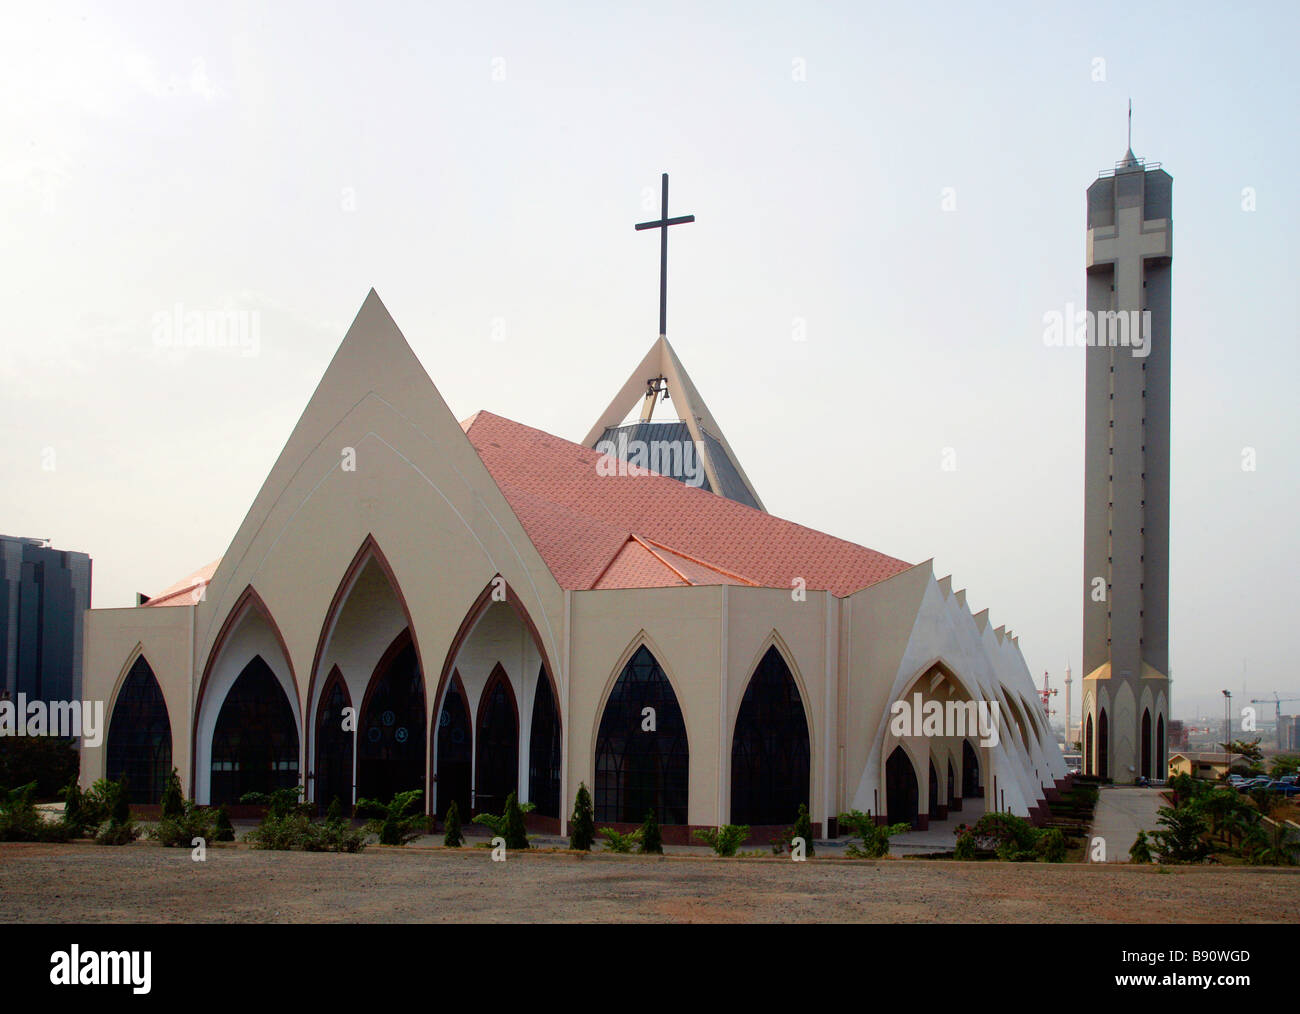 Nigeria, Christian Ecumenical Center in the capital Abuja - Stock Image